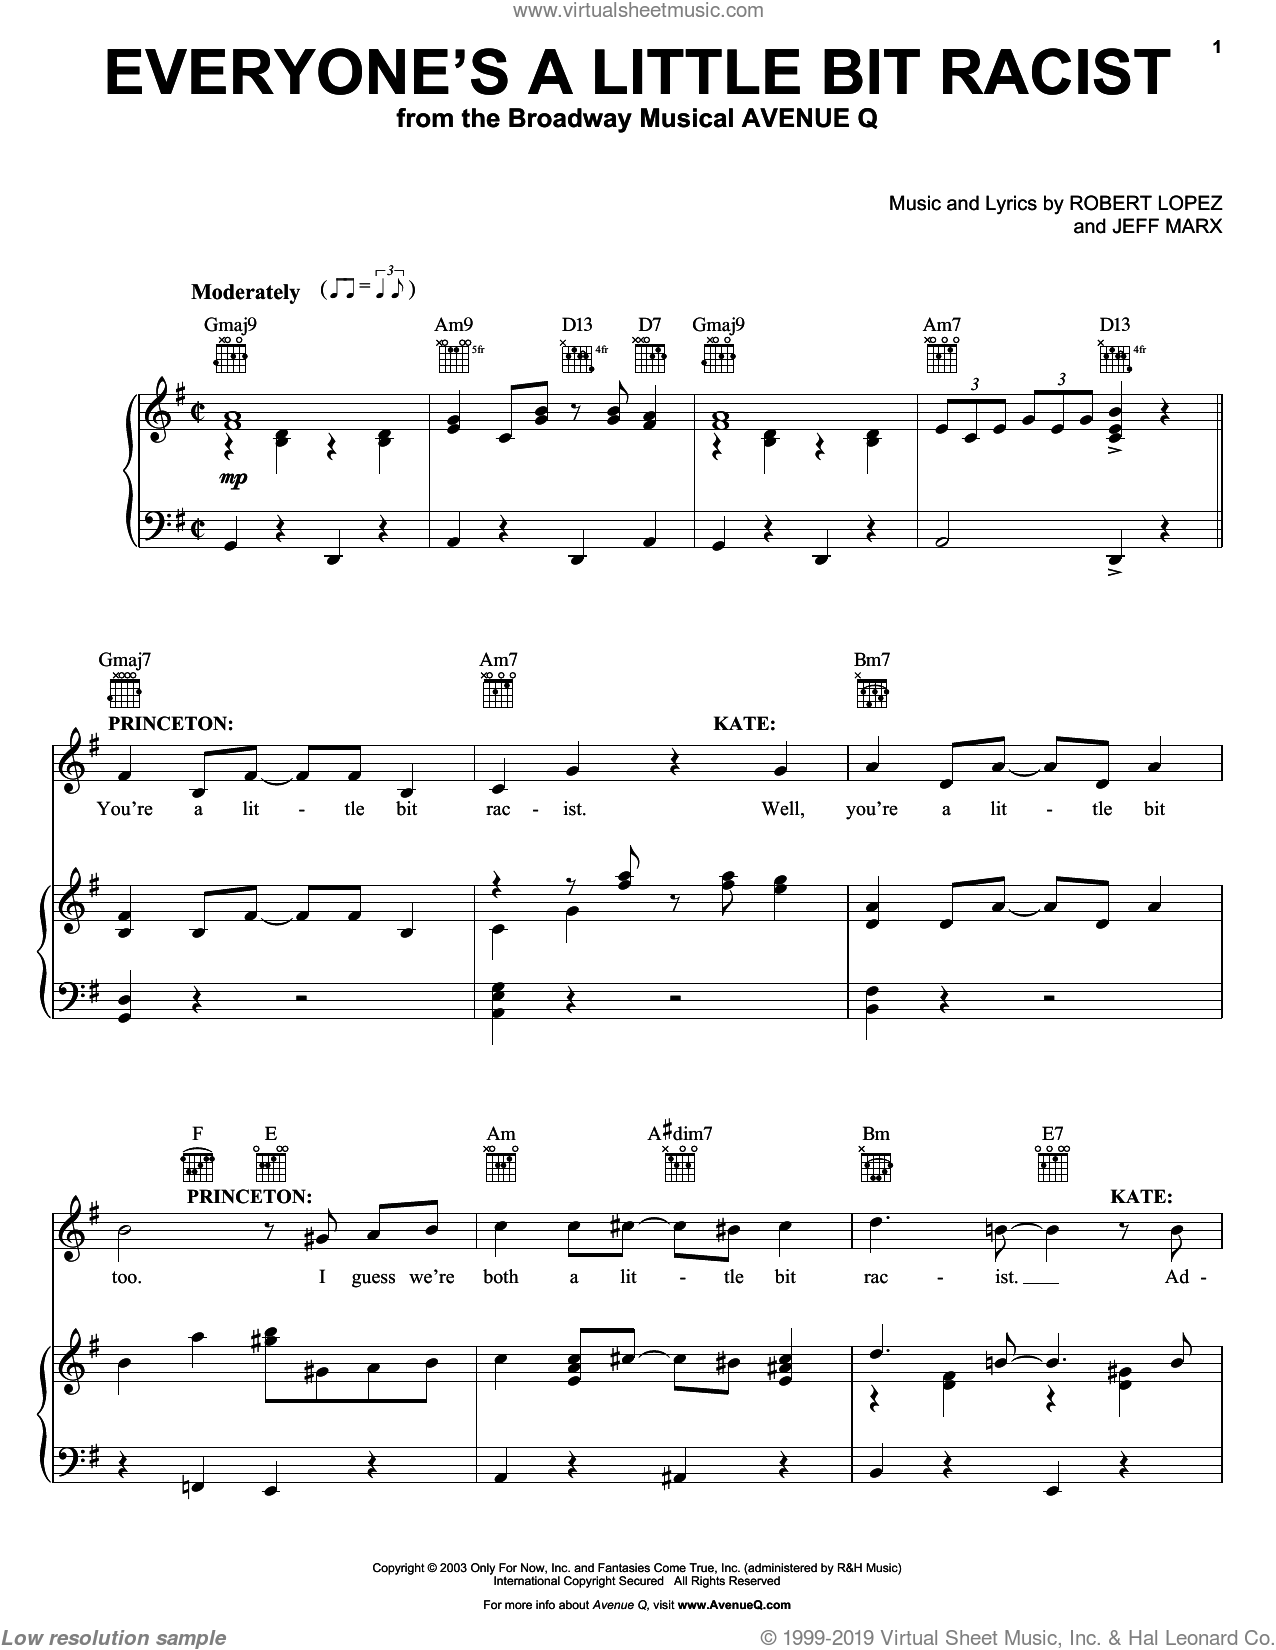 Everyone's A Little Bit Racist (from Avenue Q) sheet music for voice, piano or guitar by Avenue Q, Jeff Marx, Robert Lopez and Robert Lopez & Jeff Marx, intermediate skill level